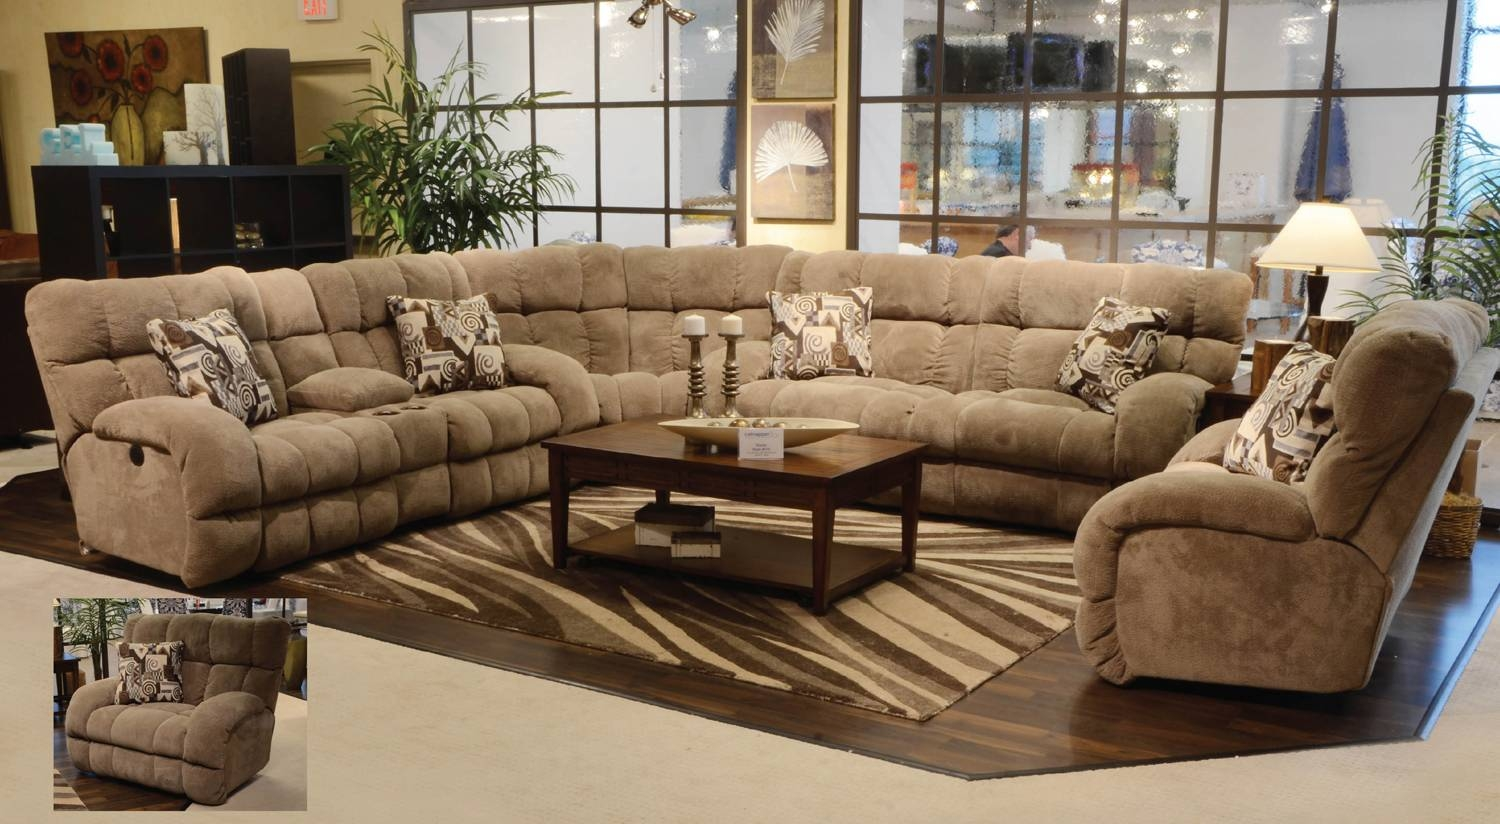 Huge Sectional Sofas – Modern Furniture throughout Huge Sofas (Image 12 of 30)